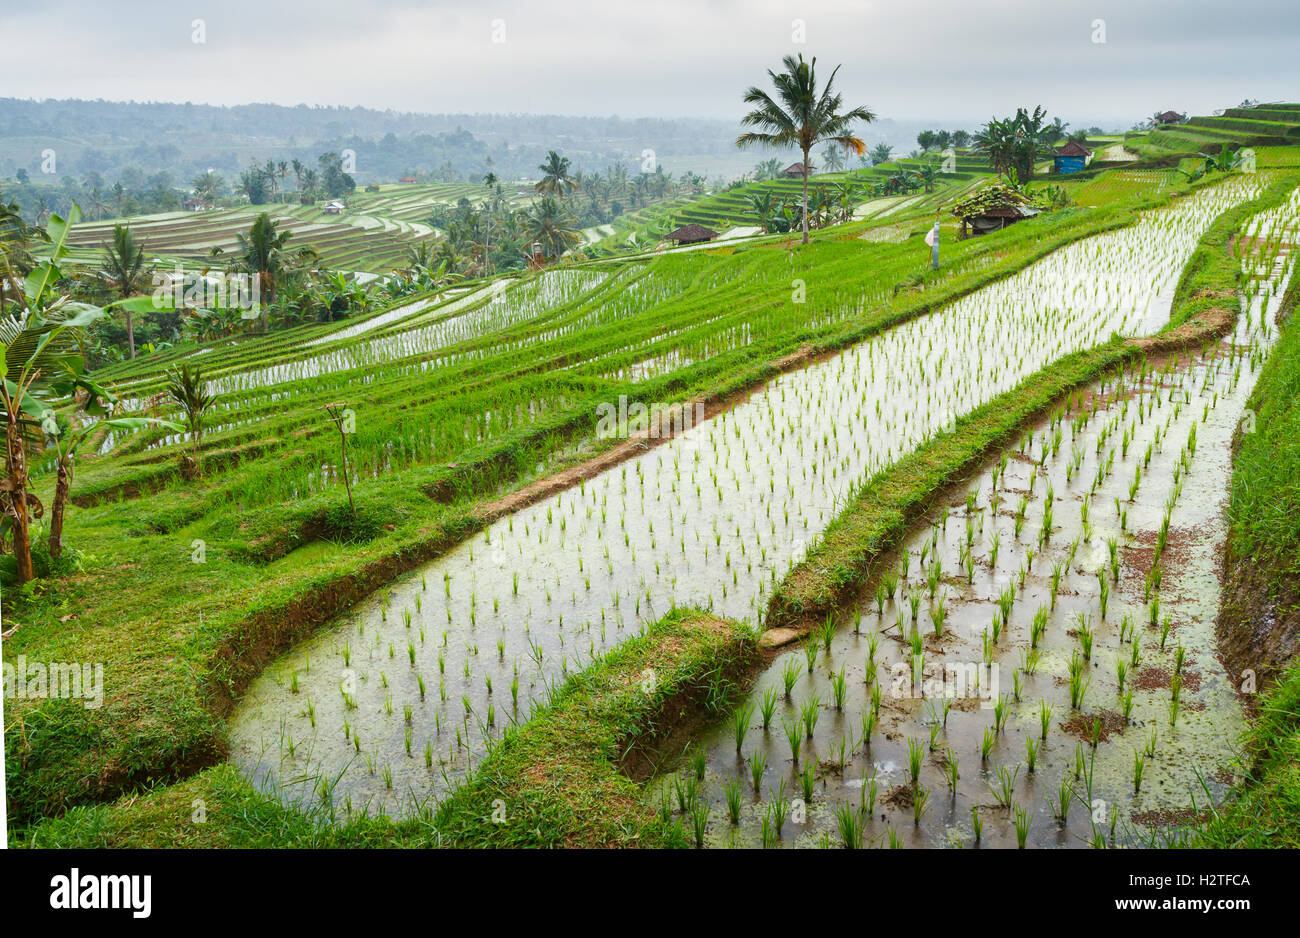 Jatiluwih rice terraces. Bali. Indonesia, Asia. Stock Photo